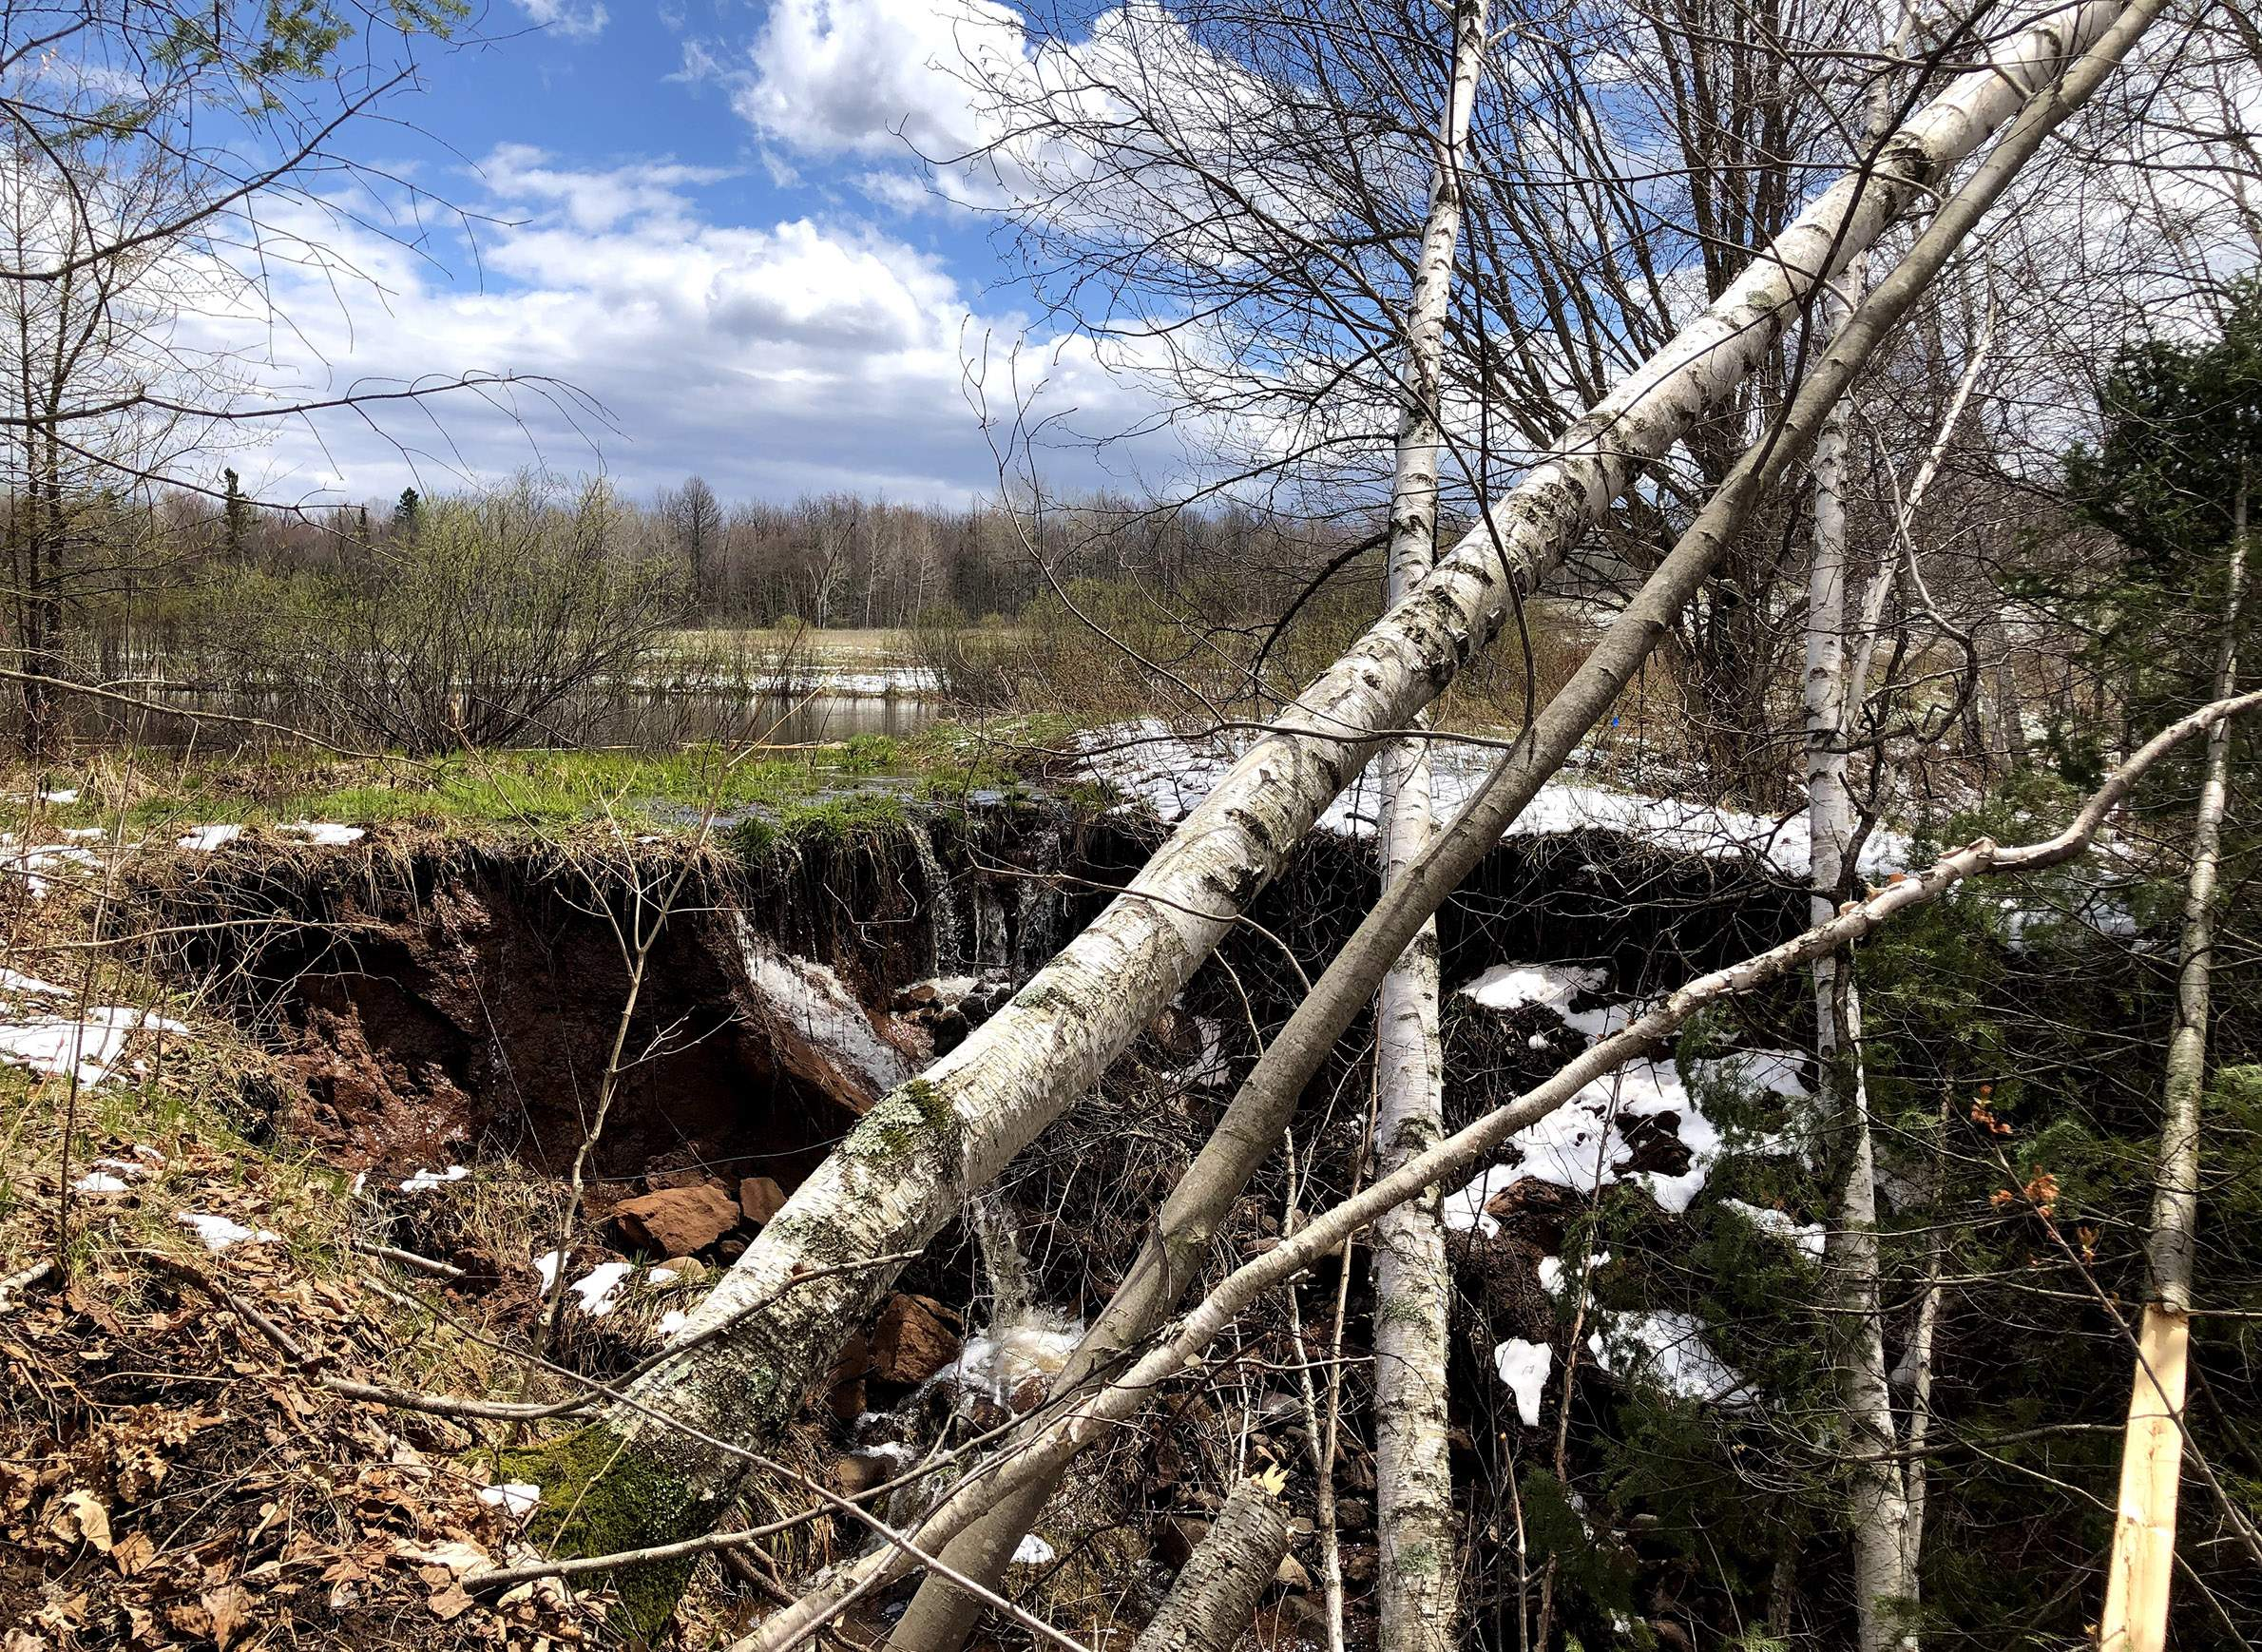 When Big Storms Inundate Wisconsin, How Could Wetlands 'Slow The